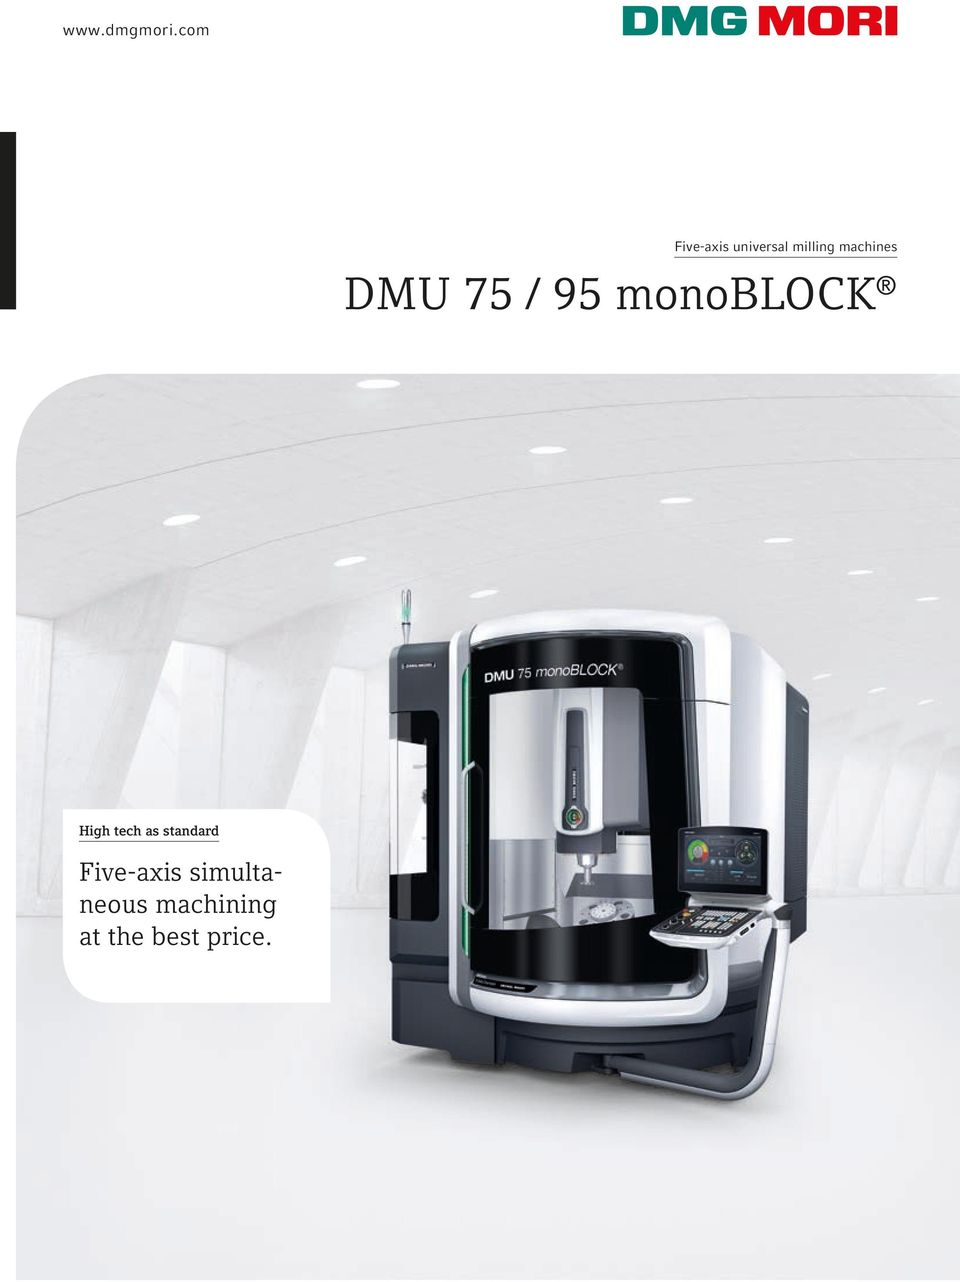 machines DMU 75 / 95 monoblock High